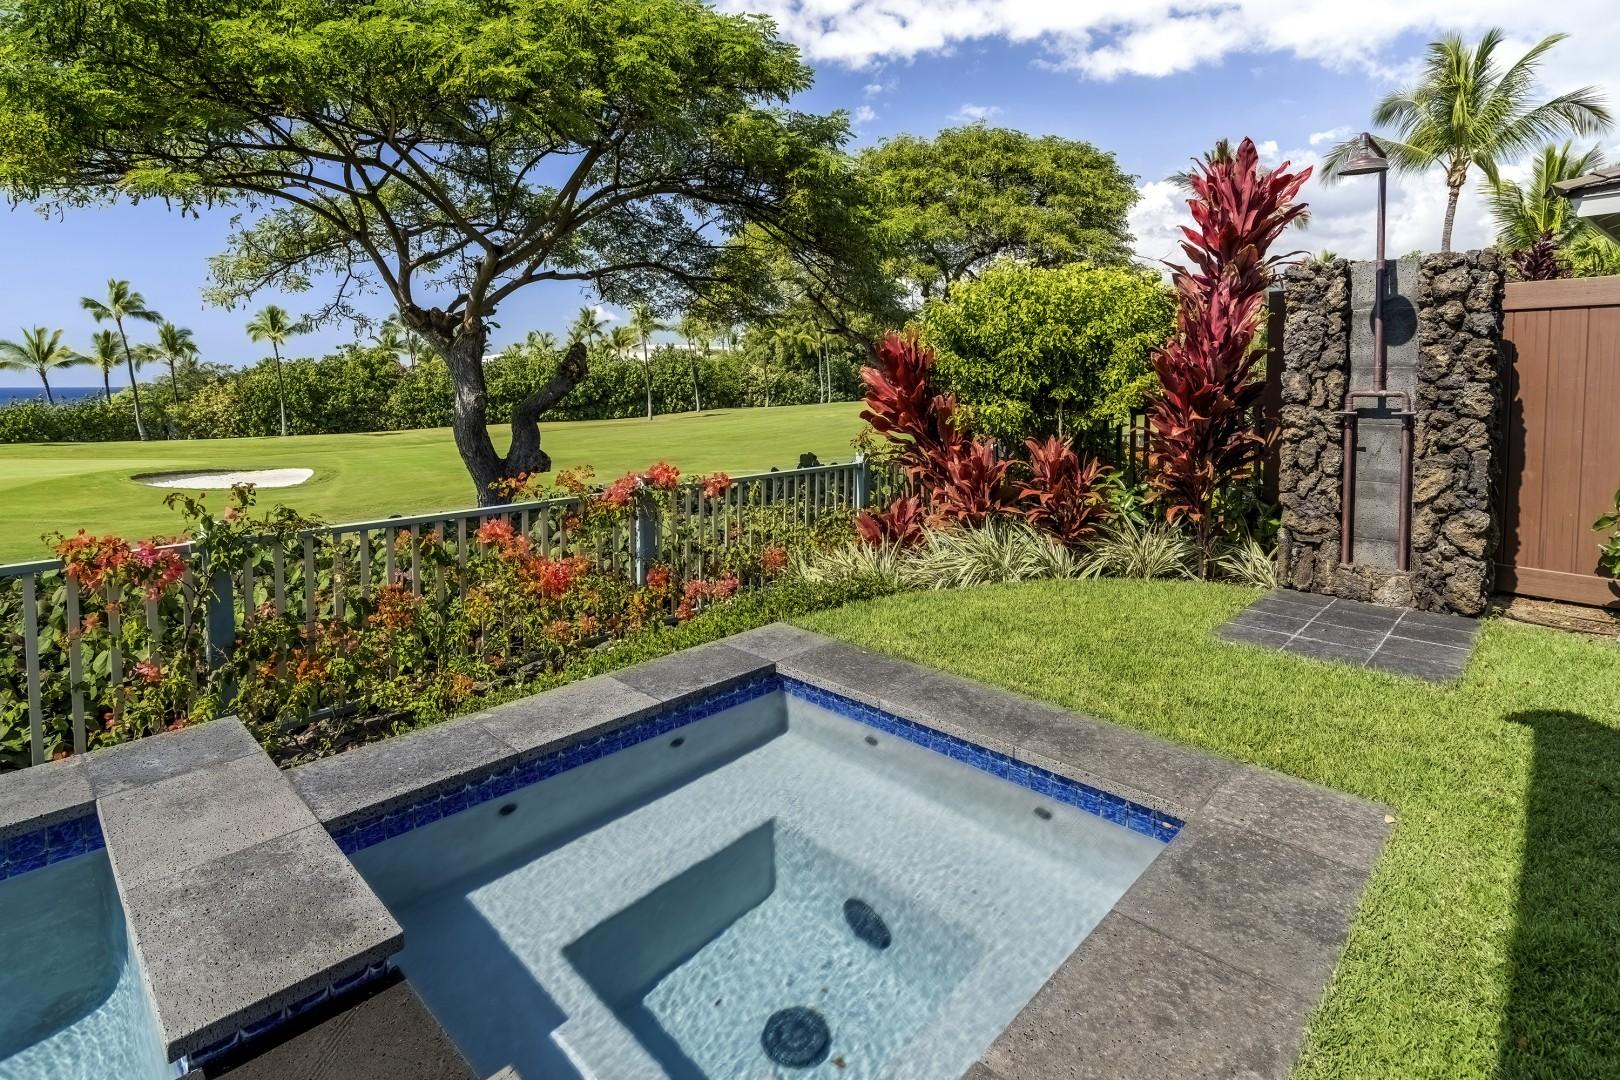 Private hot tub for your enjoyment!